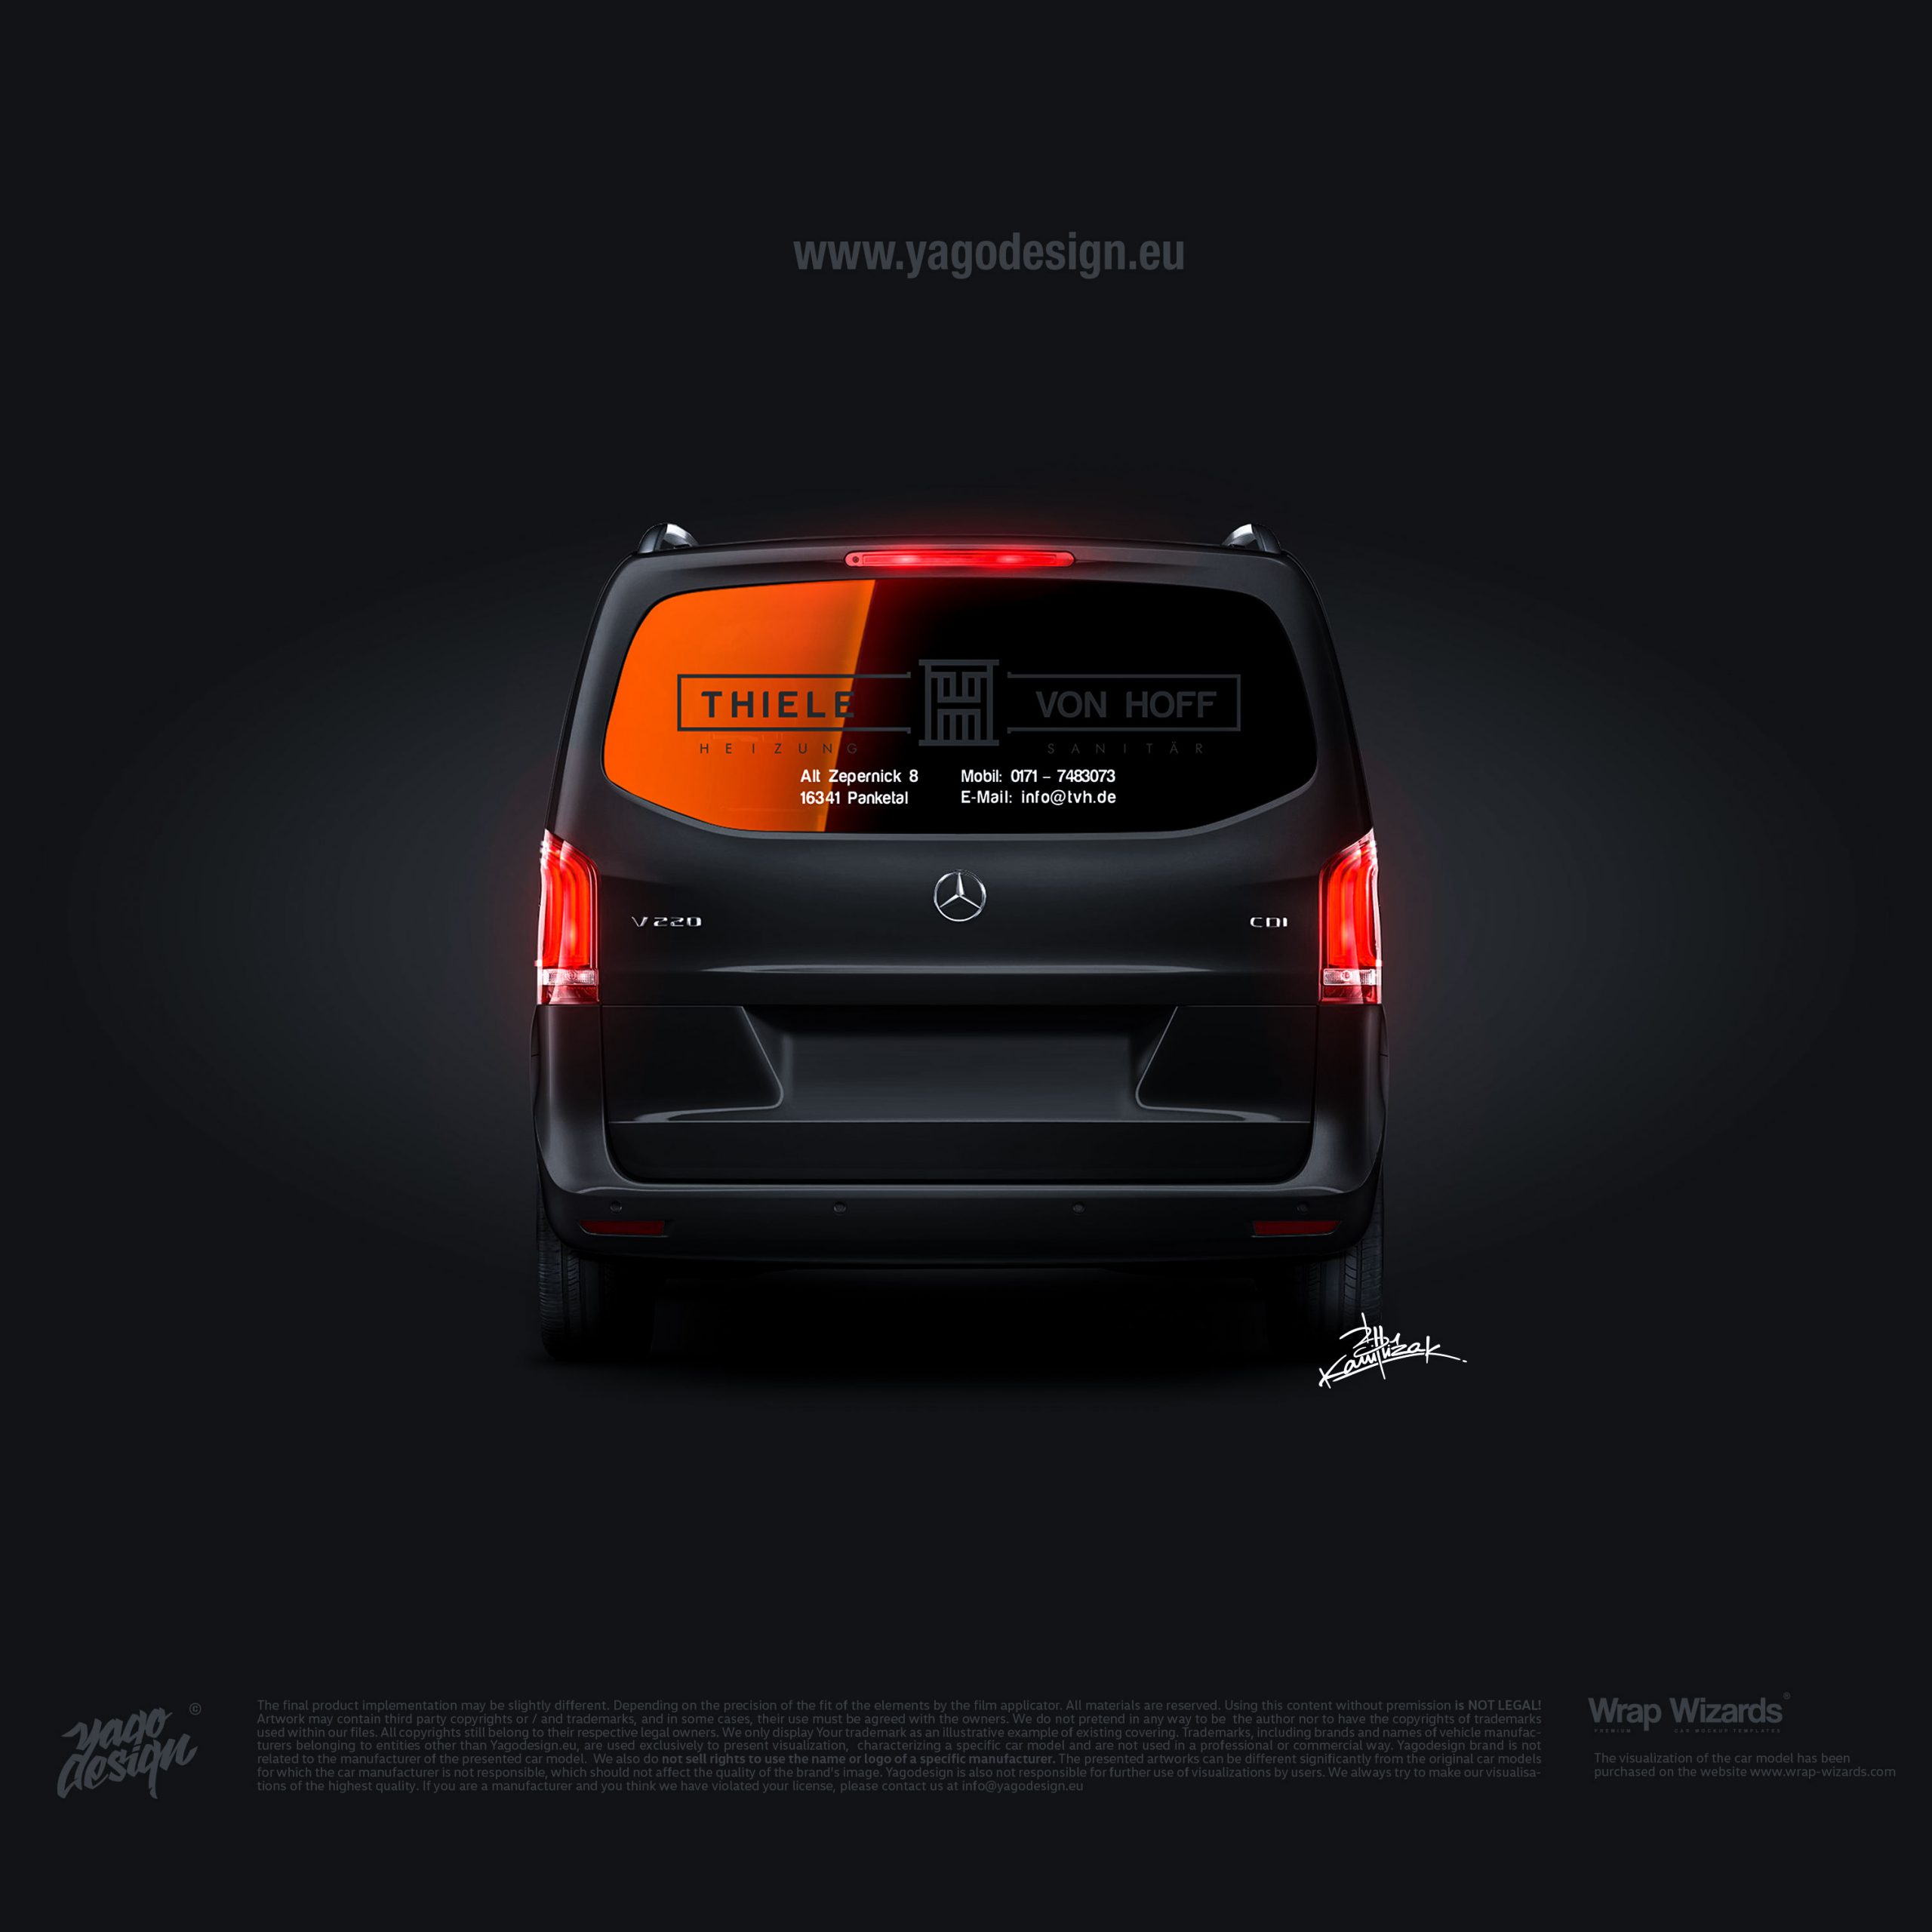 Mercedes-Benz-Vito-2020-by-Yagodesign-Automotive-Design-Studio5-scaled